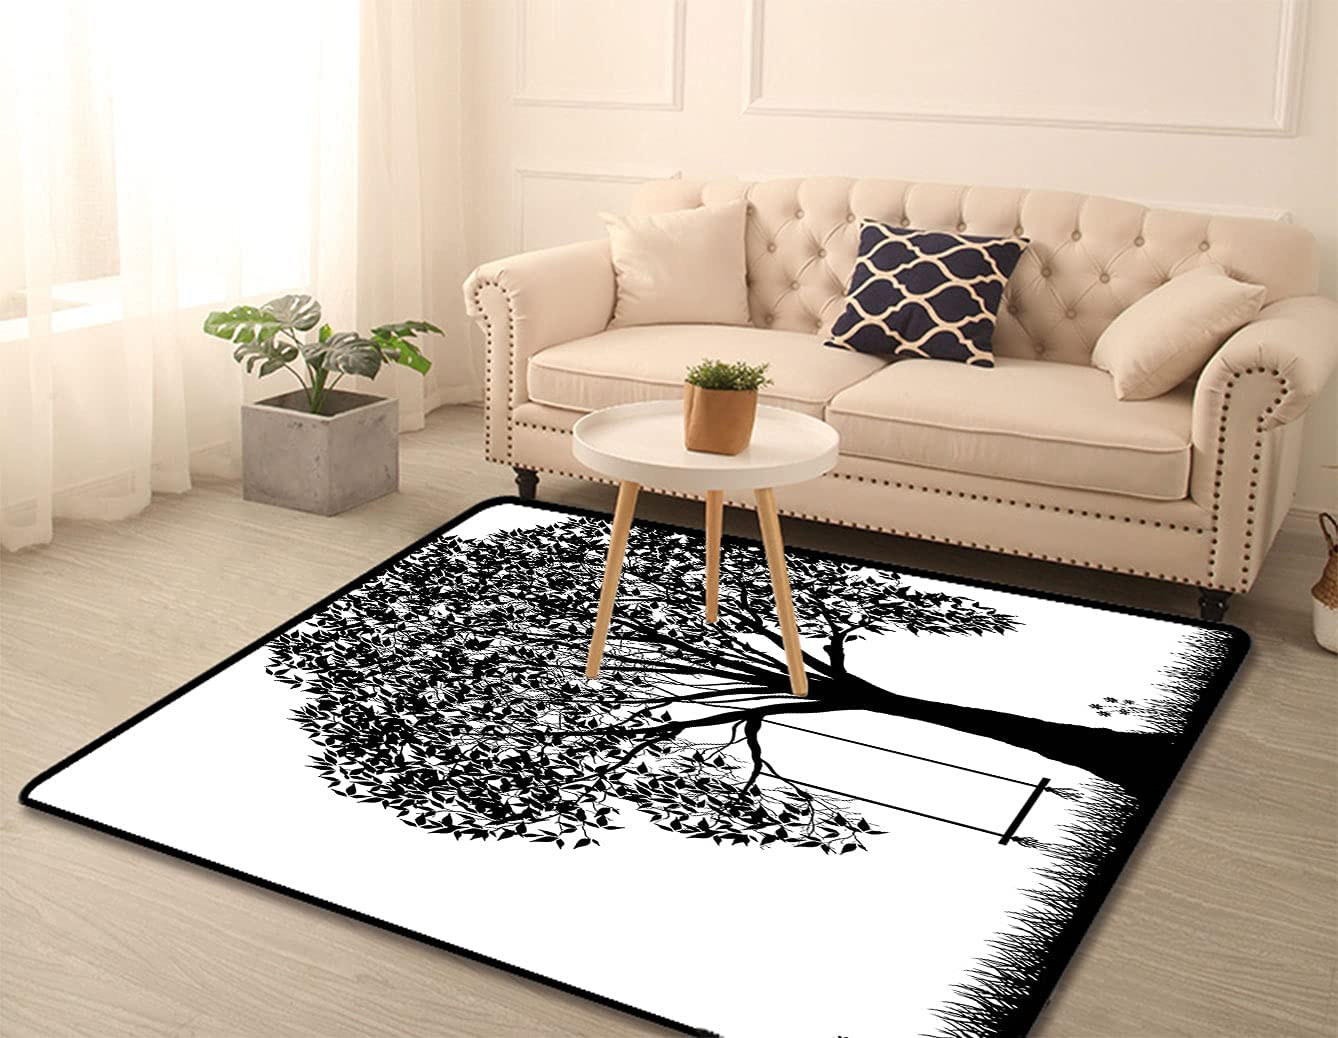 Tree Decor Custom Print Rugs A Swing Seasonal Wrap Introduction Silhouette with a discount Ill